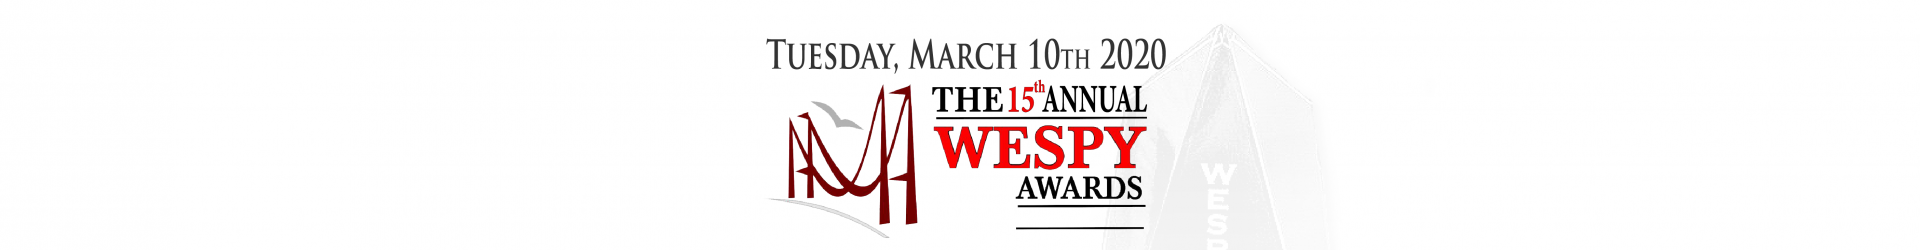 12th Annual WESPY Awards Nominations Breakfast on Monday, February 13th at 8AM